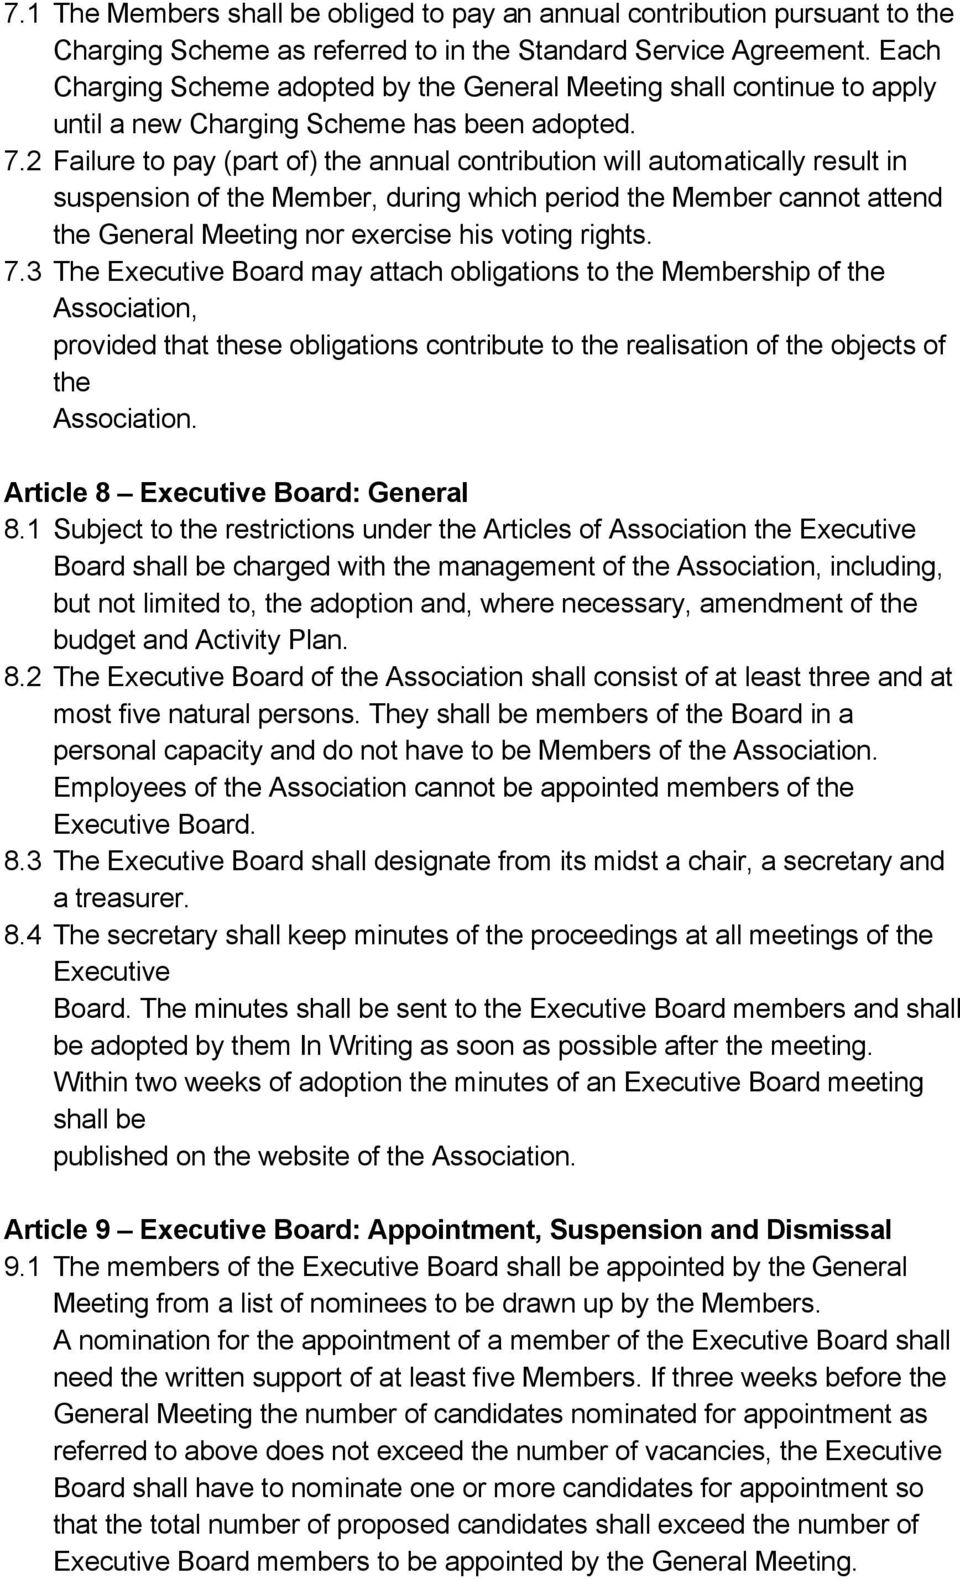 2 Failure to pay (part of) the annual contribution will automatically result in suspension of the Member, during which period the Member cannot attend the General Meeting nor exercise his voting